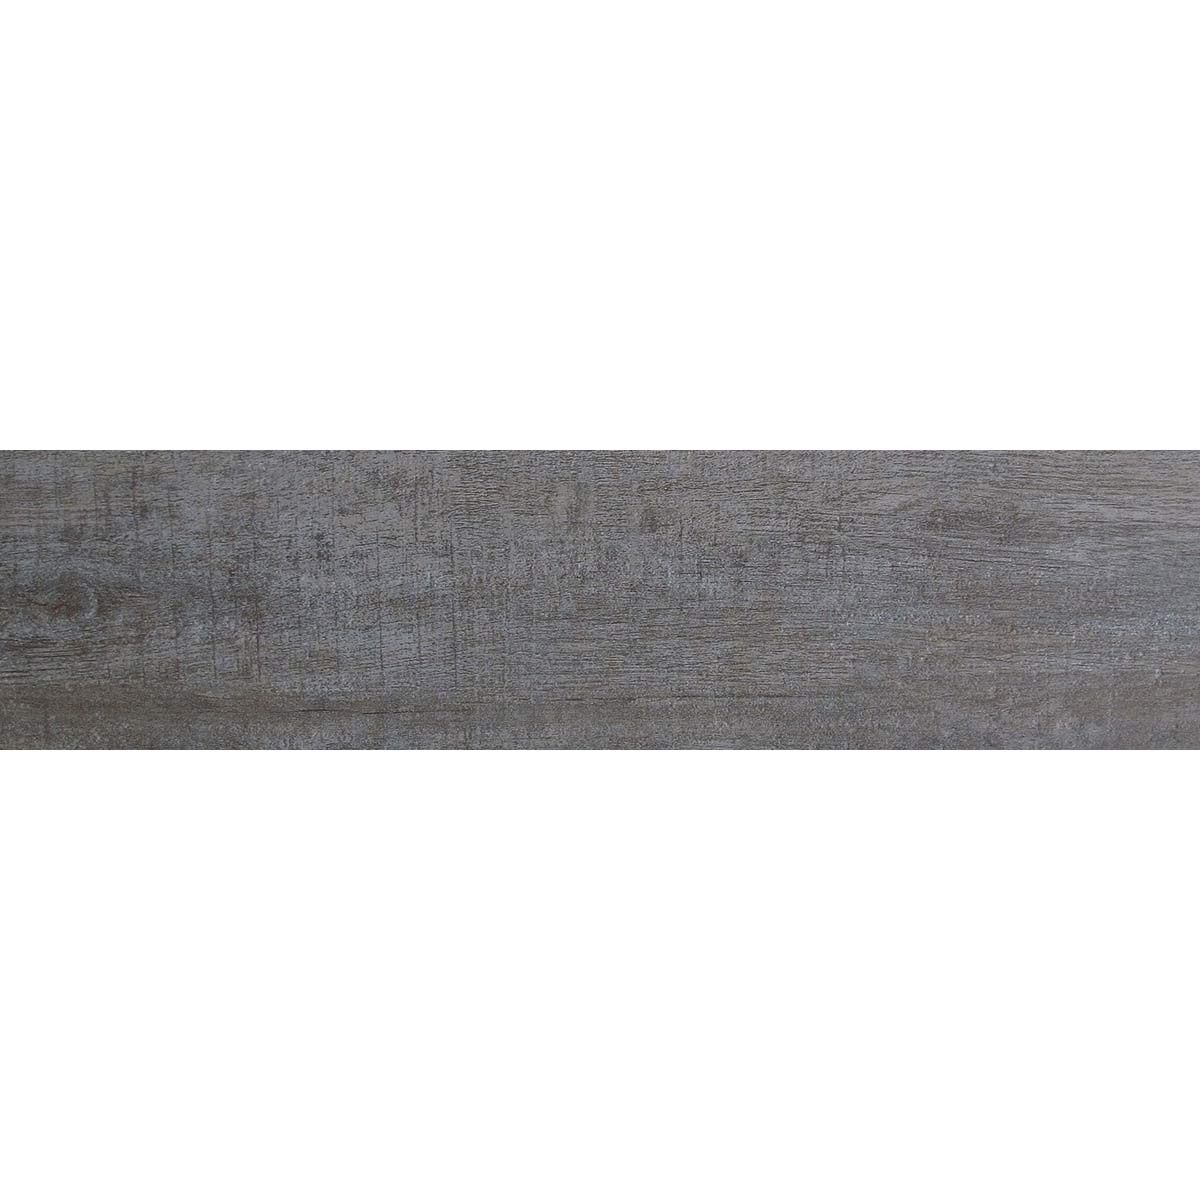 Rustic Glazed Porcelain Floor and Wall Tile - 24 ln. x 6 ln. (PM69039-3)